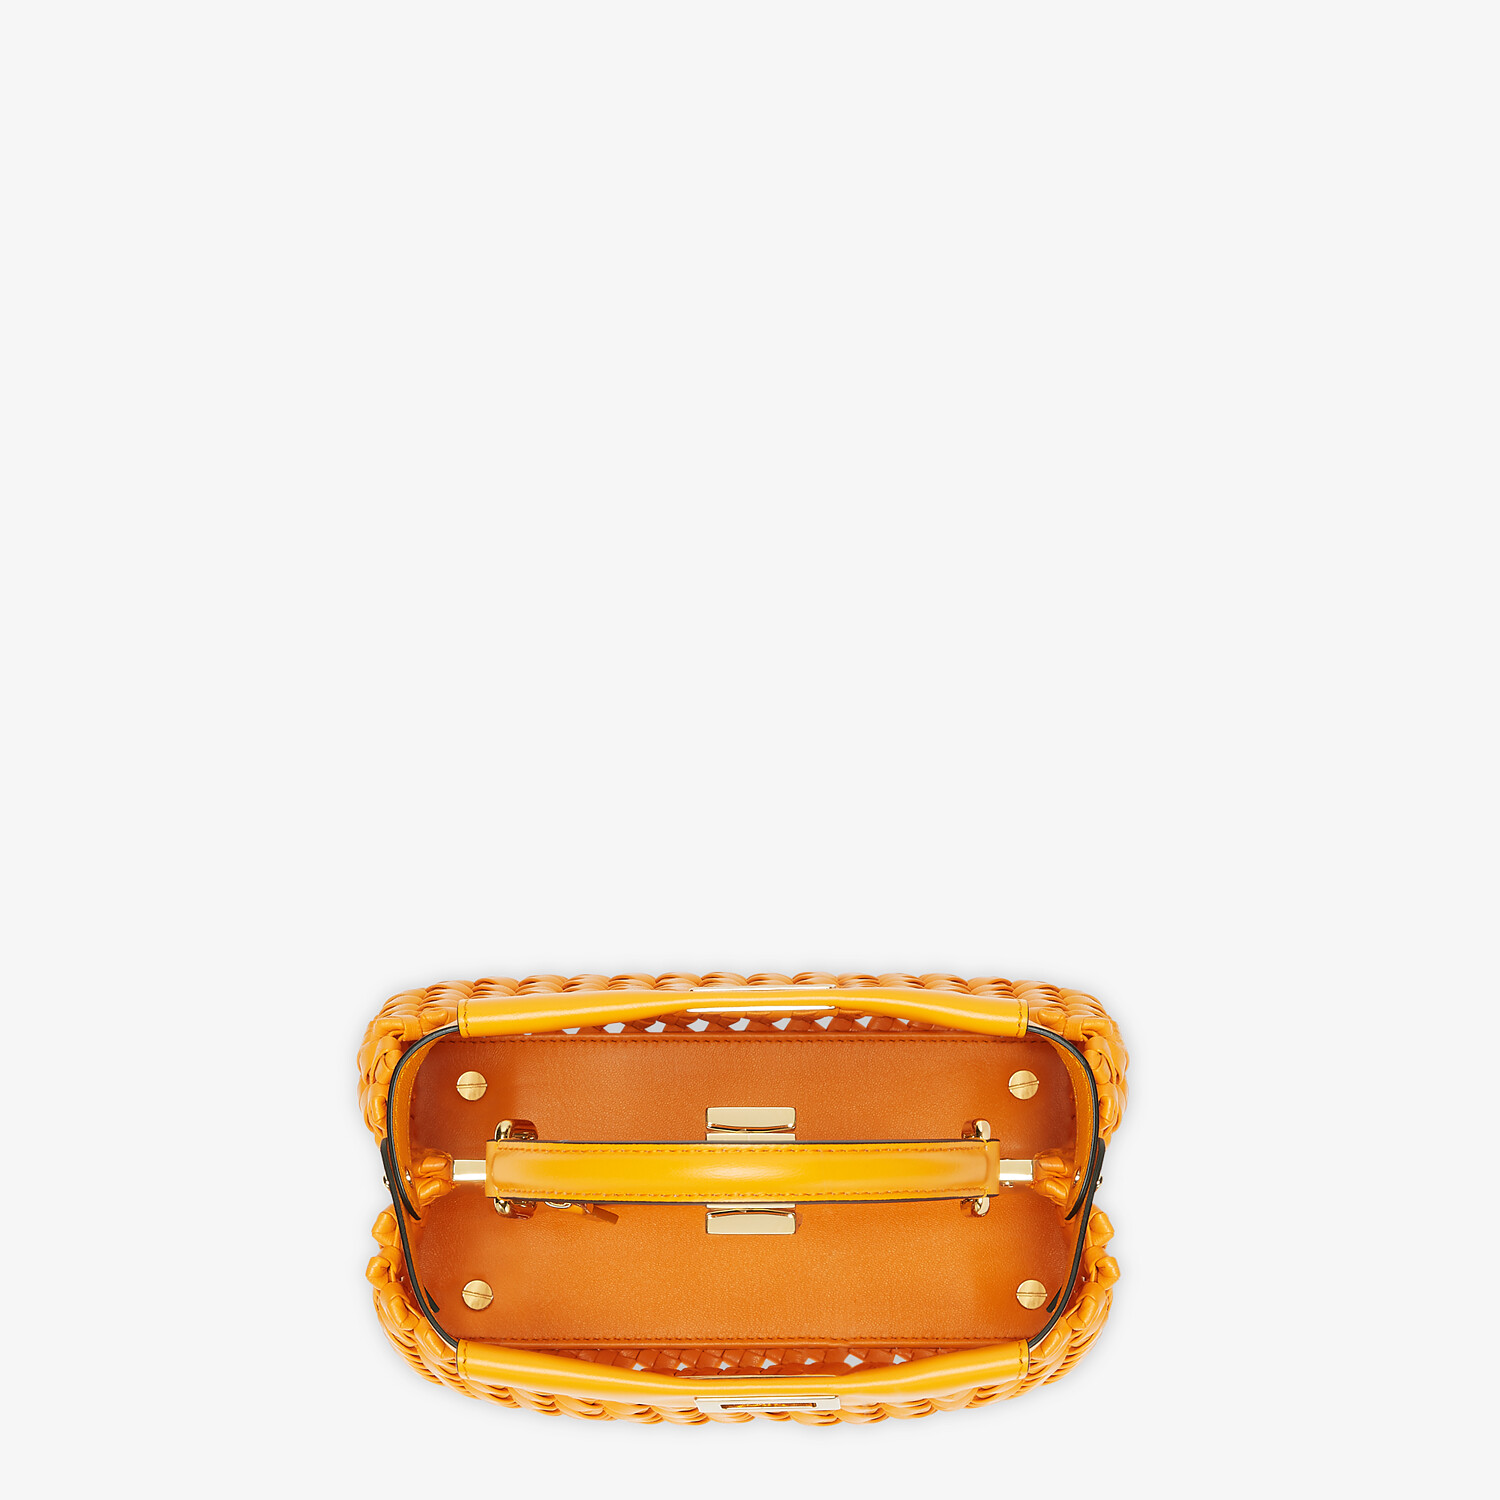 FENDI PEEKABOO ICONIC MINI - Orange braided leather bag - view 4 detail